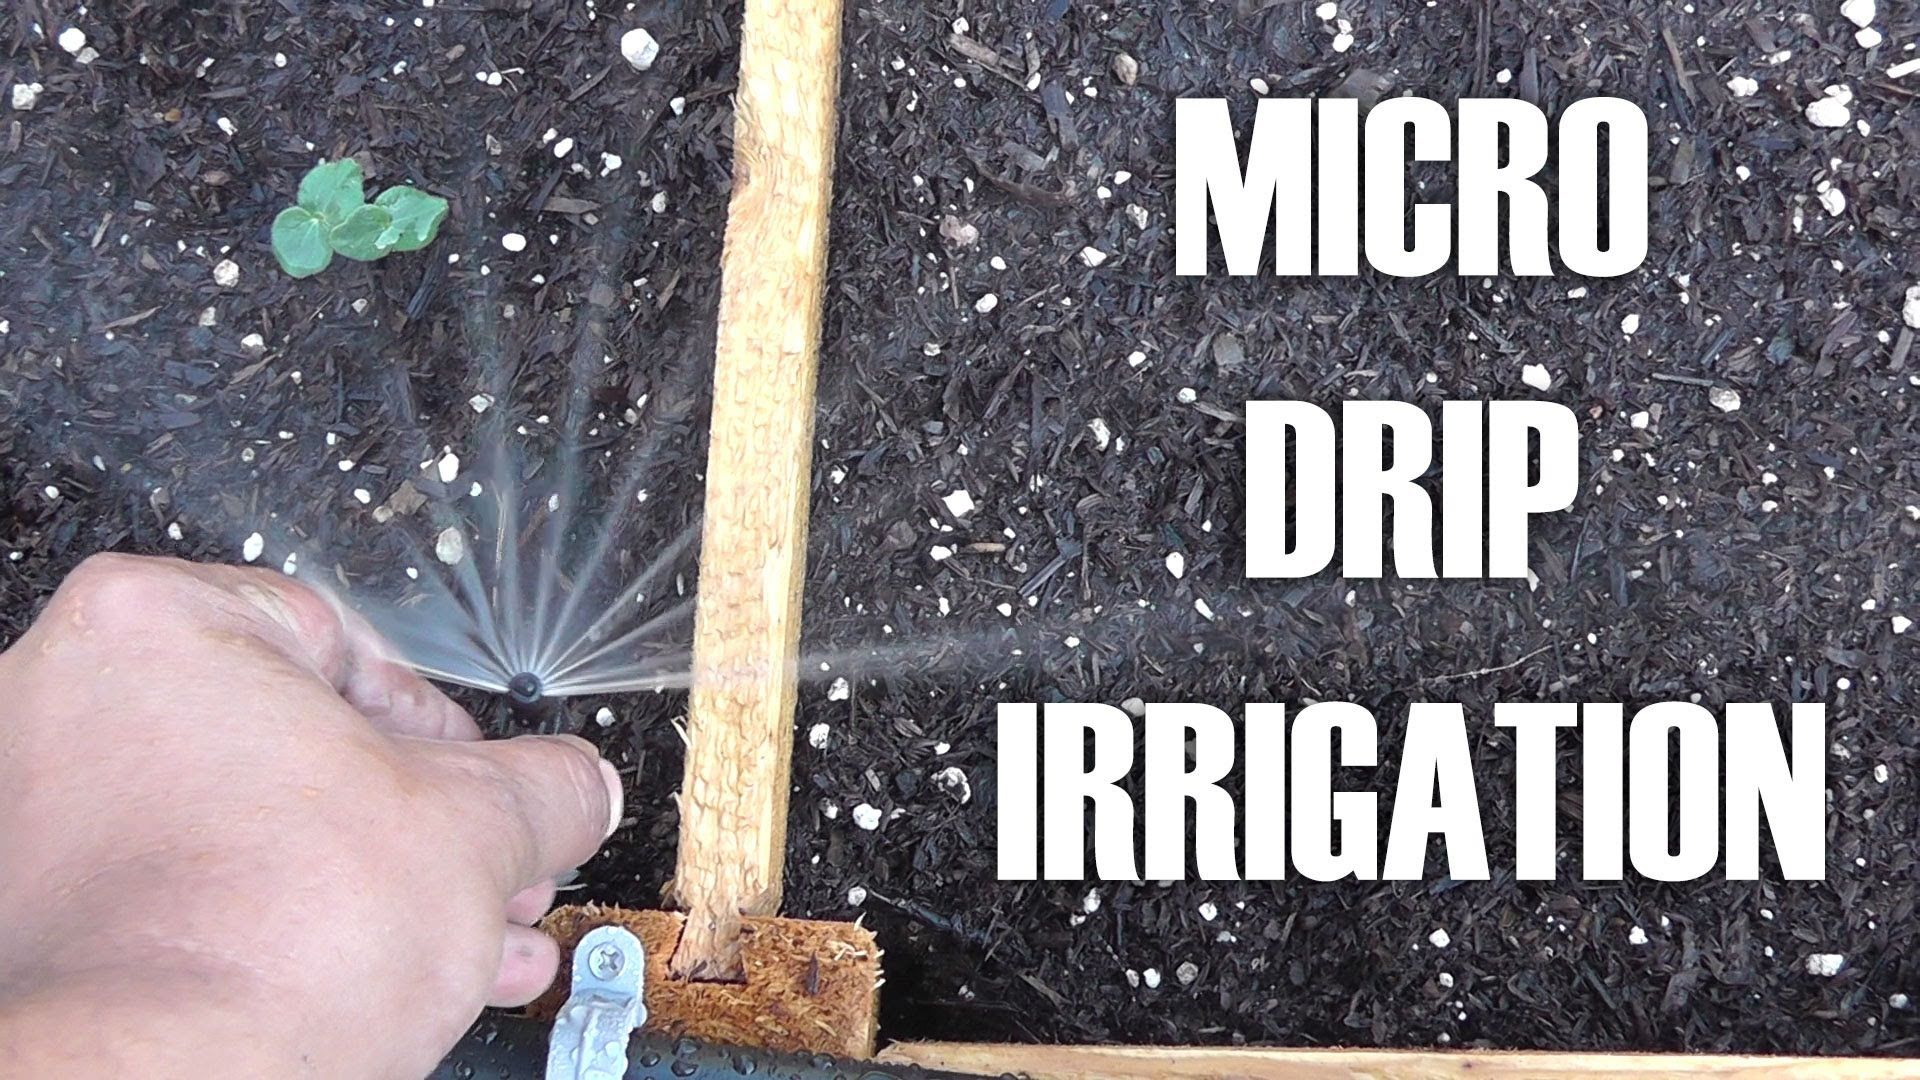 Micro Sprinklers For Raised Beds